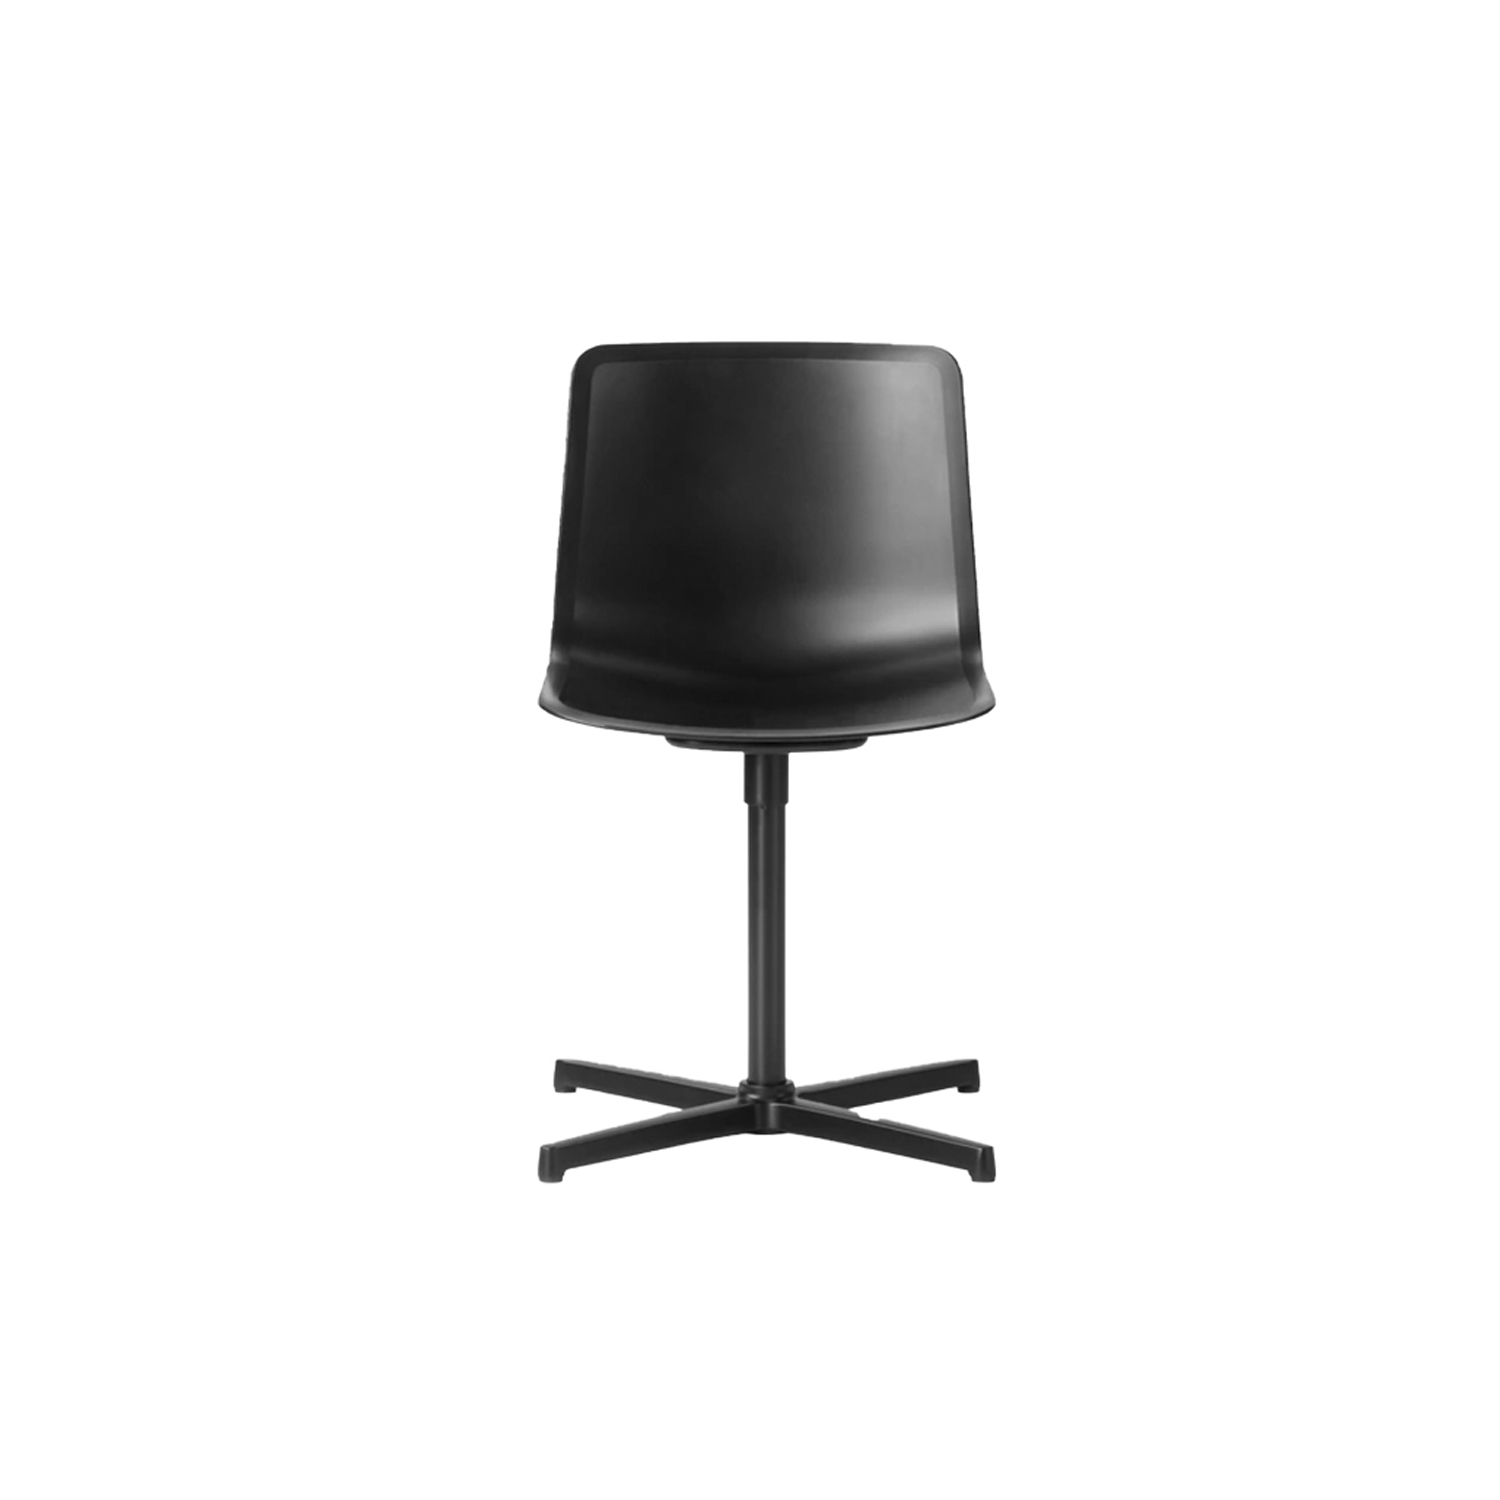 Pato Swivel X Base Chair - Pato Swivel features a 4-point swivel base with optional casters, making it ideal for both task seating and conference rooms. The chair can be tuned from basic to exclusive with optional upholstery.  Pato is a prime example of our focus on sustainability and protecting the environment, reflected in a chair that's 100% renewable and recyclable. All components can be incorporated into future furniture production, thus contributing to a circular economy by minimising the use of materials, resources, waste and pollution.   Merging traditional production methods with cutting-edge technology, Pato is a human-centric, highly versatile series of multi-purpose functional furniture that draws on our in-depth experience with materials, immaculate detailing and heritage of fine craftsmanship. Allowing us to apply our high standards of texture, finish and carpentry techniques to an array of materials in addition to wood for products aimed at a mass market.   With its clean lines and curves, Pato echoes the ethos of Danish-Icelandic design duo Welling/Ludvik. Demonstrating their belief that good design has the ability to be interesting, even when reduced to its most simple form. Where anything extraneous is eliminated and every detail has a purpose.   Together we spent nearly three years developing the shell structure to have a soft surface that's also wear and tear resistant. Enhancing the chair's ability to optimally conform to the user's body is a subtle beveled edge. A technique from classic cabinetmaking, which gives the chair a sense of handcrafted finesse. Each Pato is detailed and finished by hand by our highly skilled crafts people, who refine the beveled edge and the silky, resilient surface. Setting a new standard for the execution and finish of polypropylene.   Since the success of its initial launch, we've expanded Pato into an extensive collection of variants, featuring armchairs, barstools, office swivel chairs and a long list of more, wi